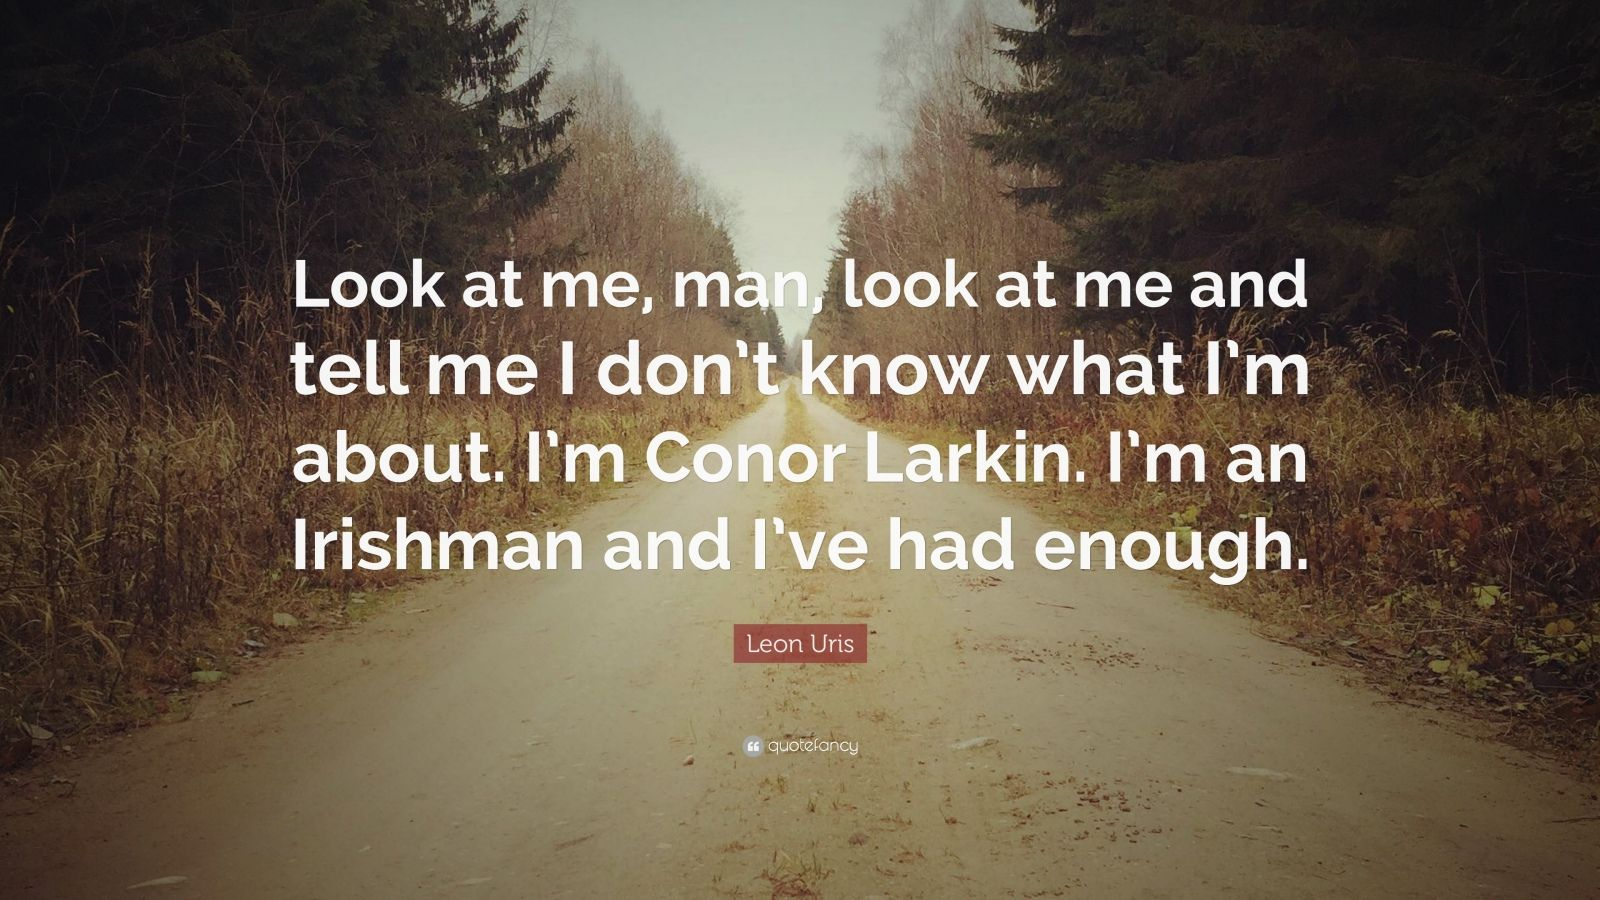 "Leon Uris Quote: ""Look at me, man, look at me and tell me I don't know what I'm about. I'm Conor Larkin. I'm an Irishman and I've had enough."""